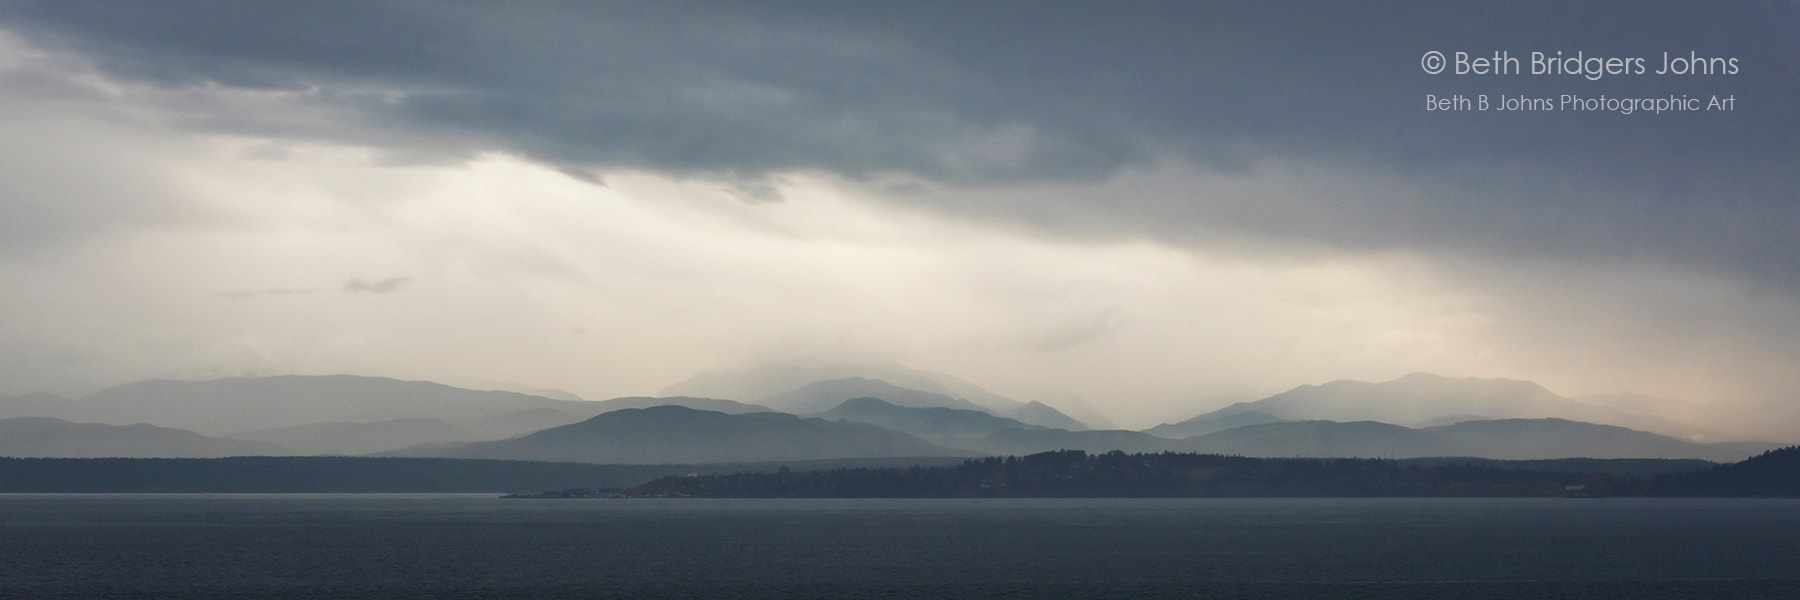 The Olympic Mountains from across Admiralty Bay, Beth B Johns Photographic Art